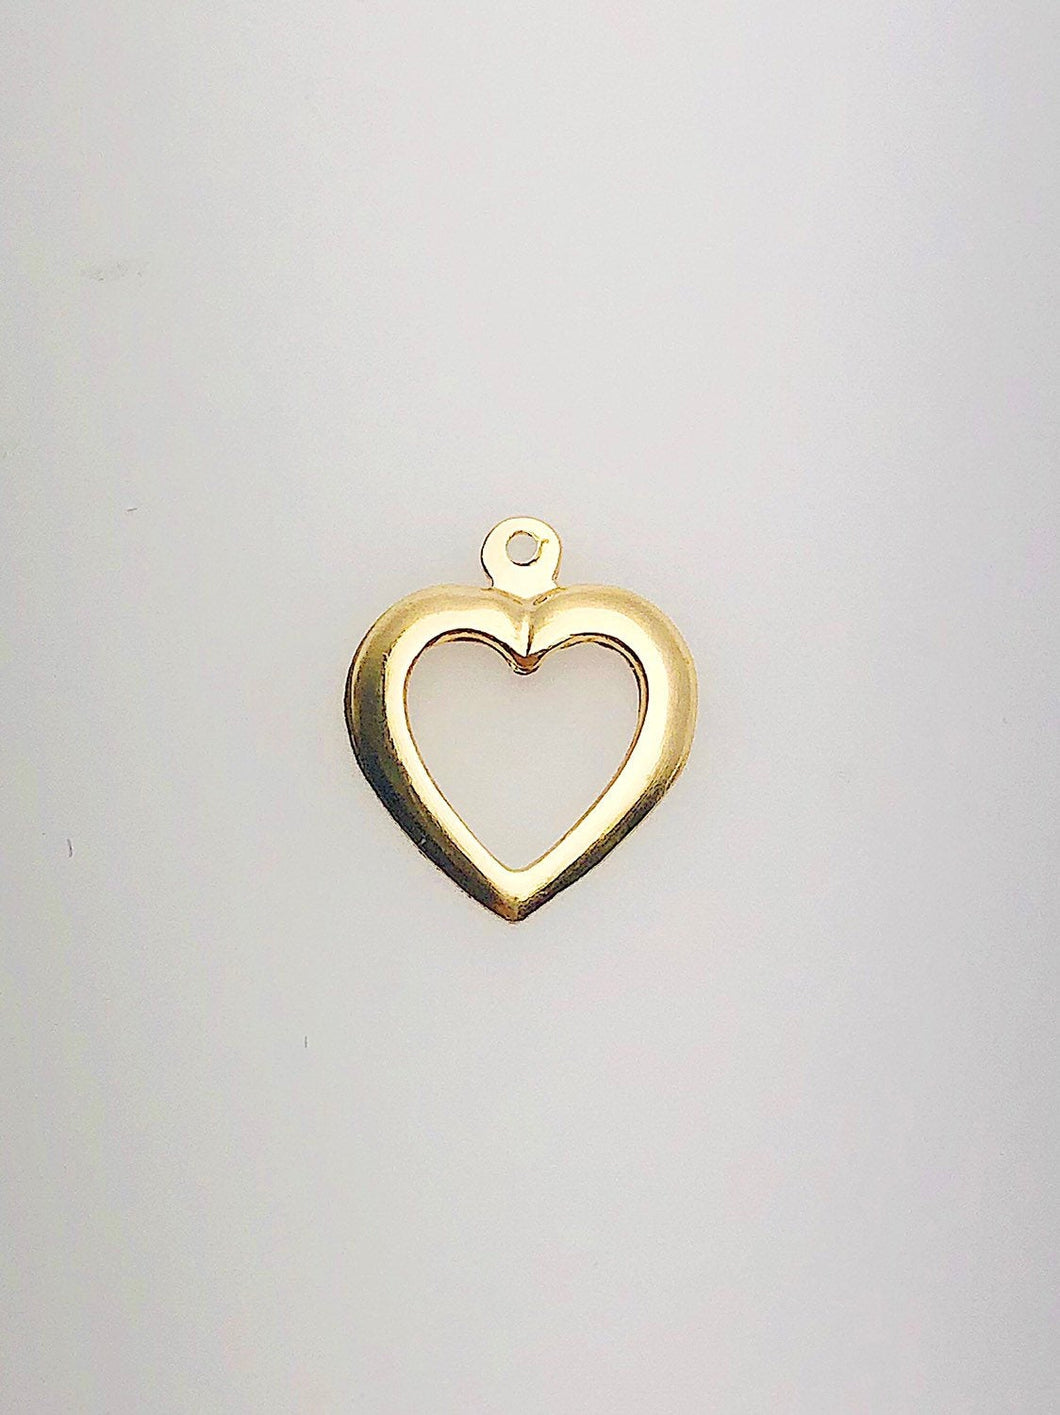 14K Gold Fill Cut Out Heart Charm w/ Ring, 10.3x12.7mm, Made in USA - 107